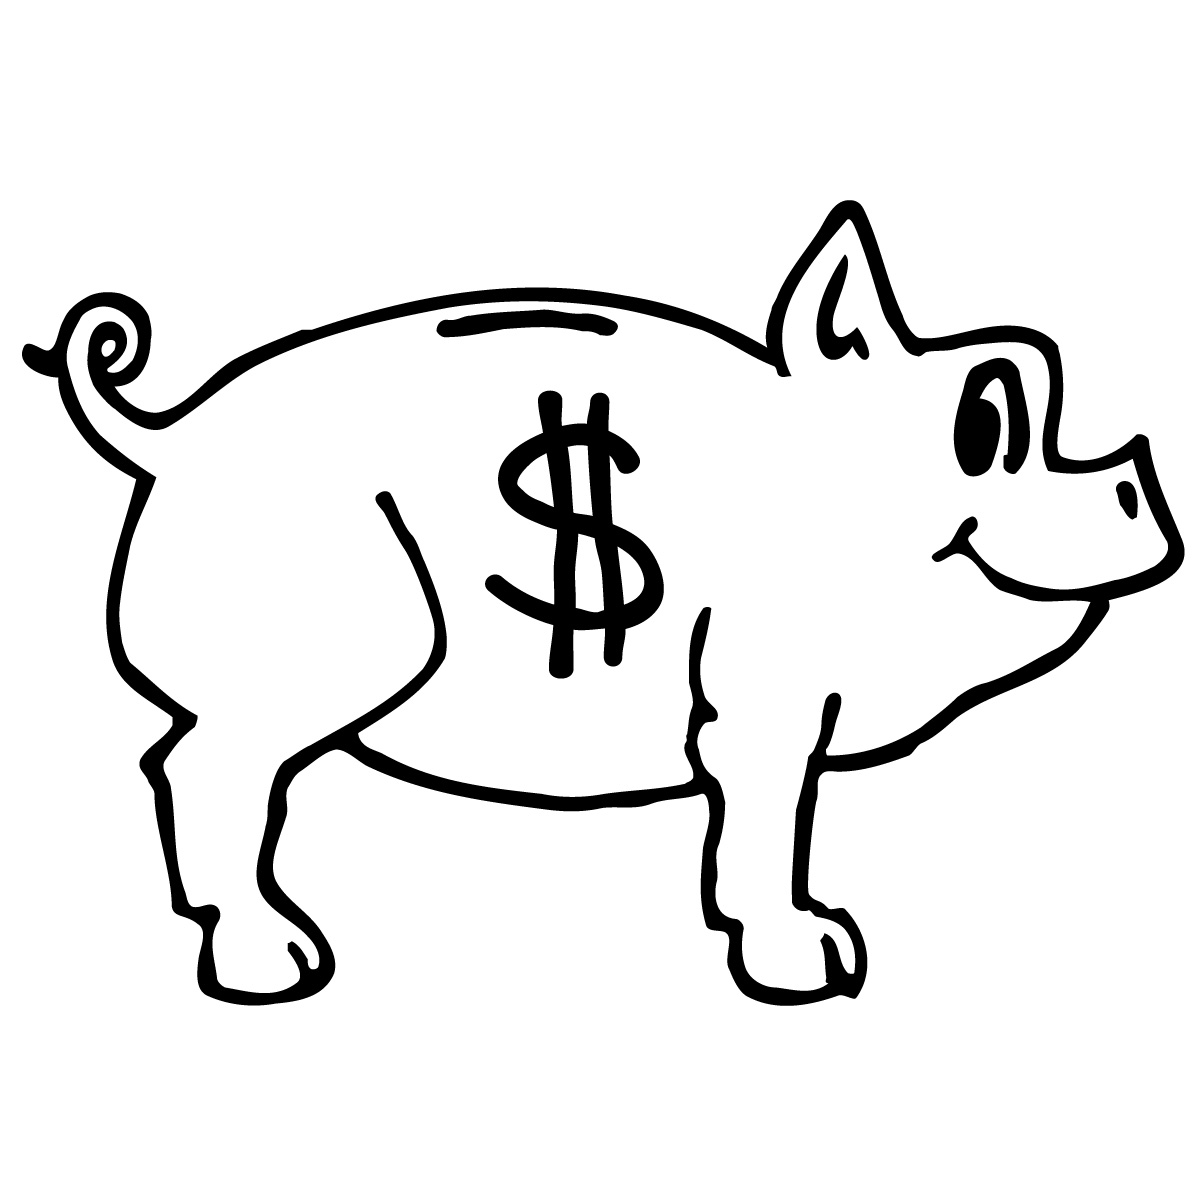 Dollar Sign Clipart Black And White Clipart Panda